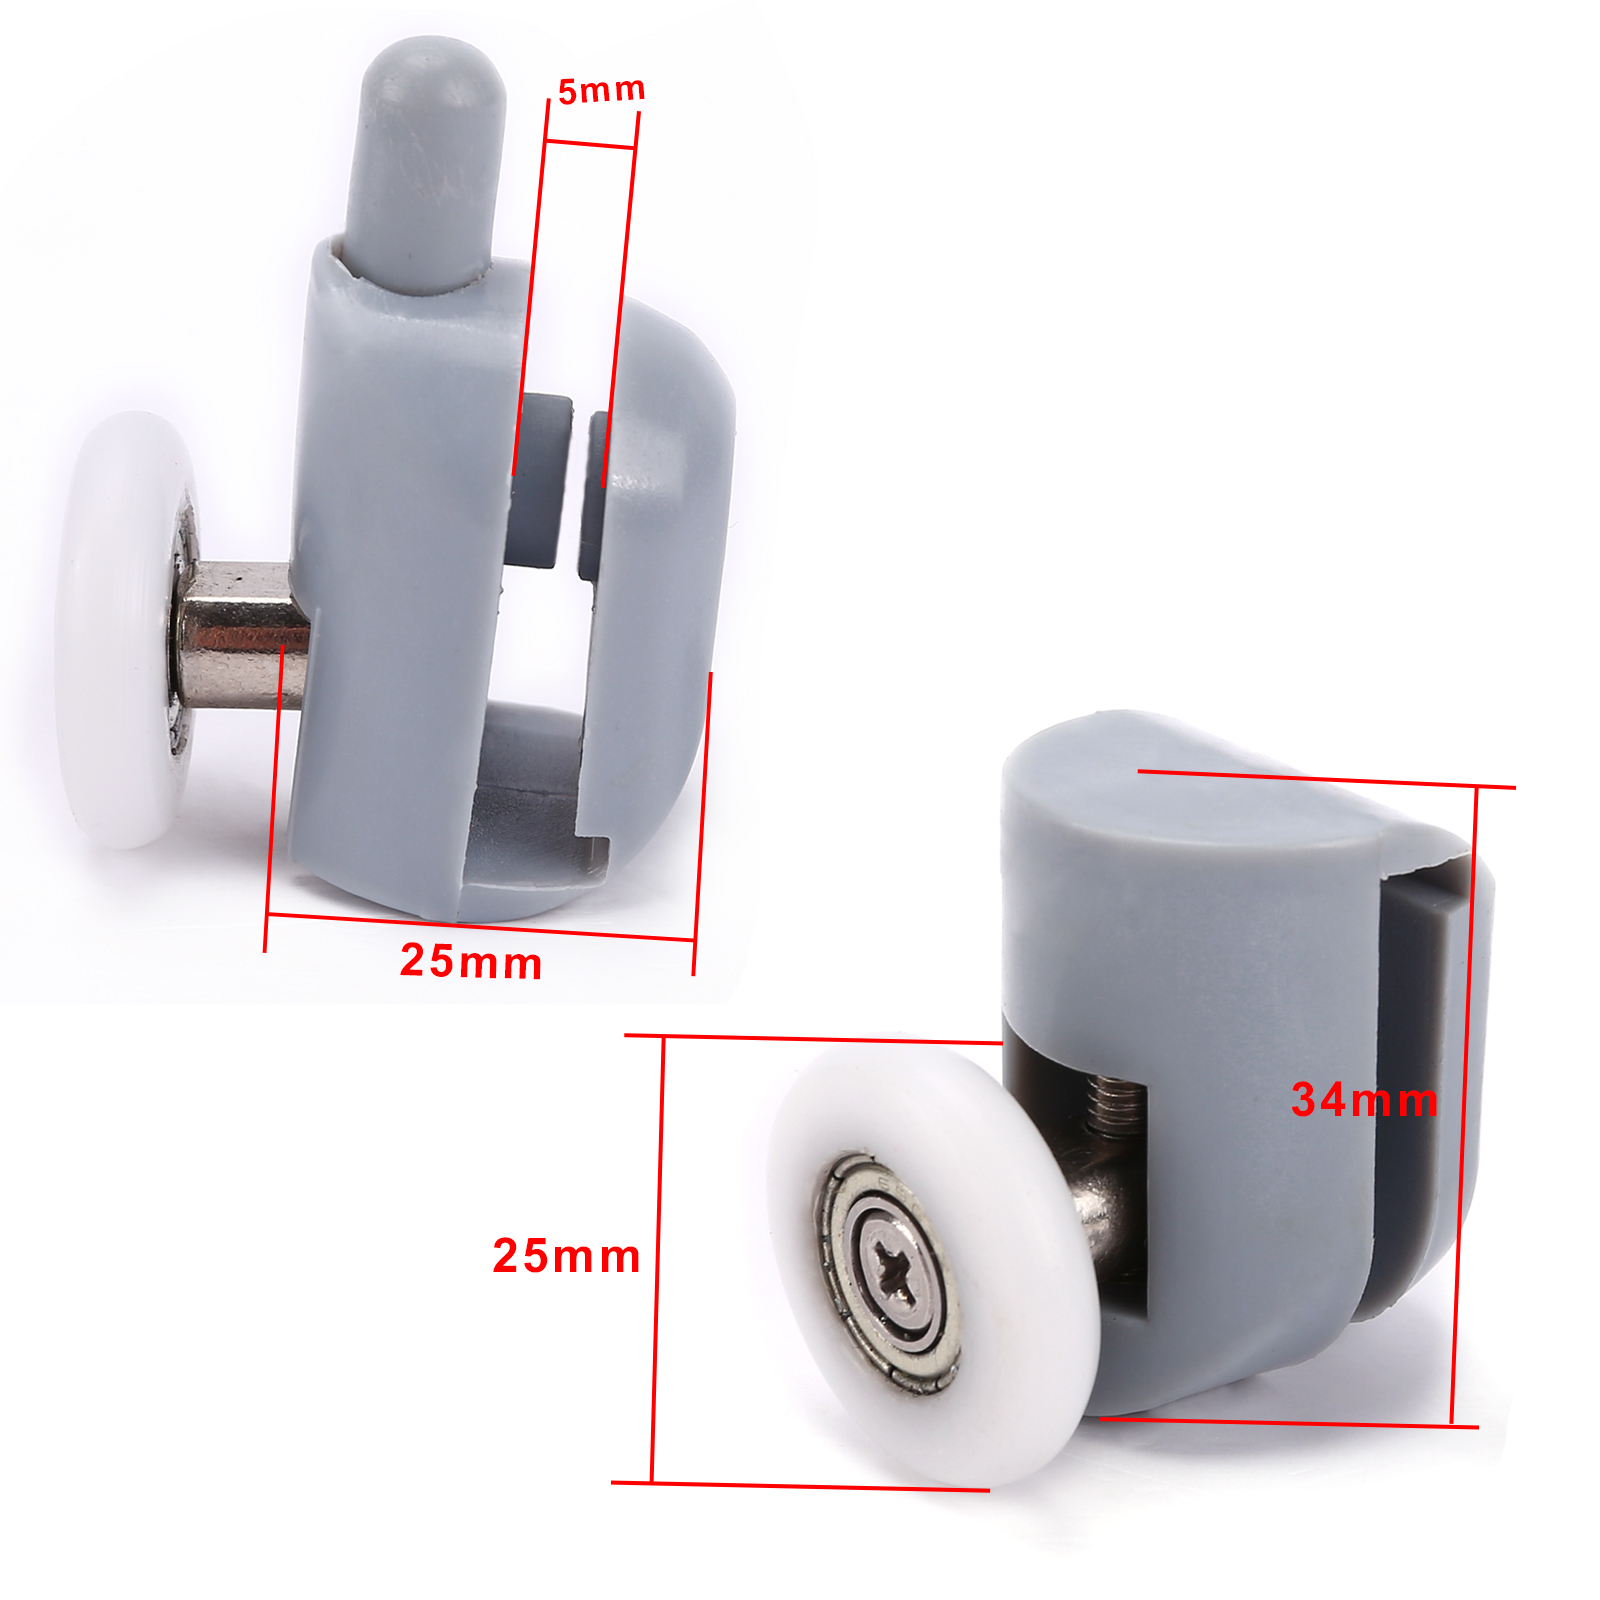 Duscht?r Rollen : Curved Shower Door Rollers Wheels